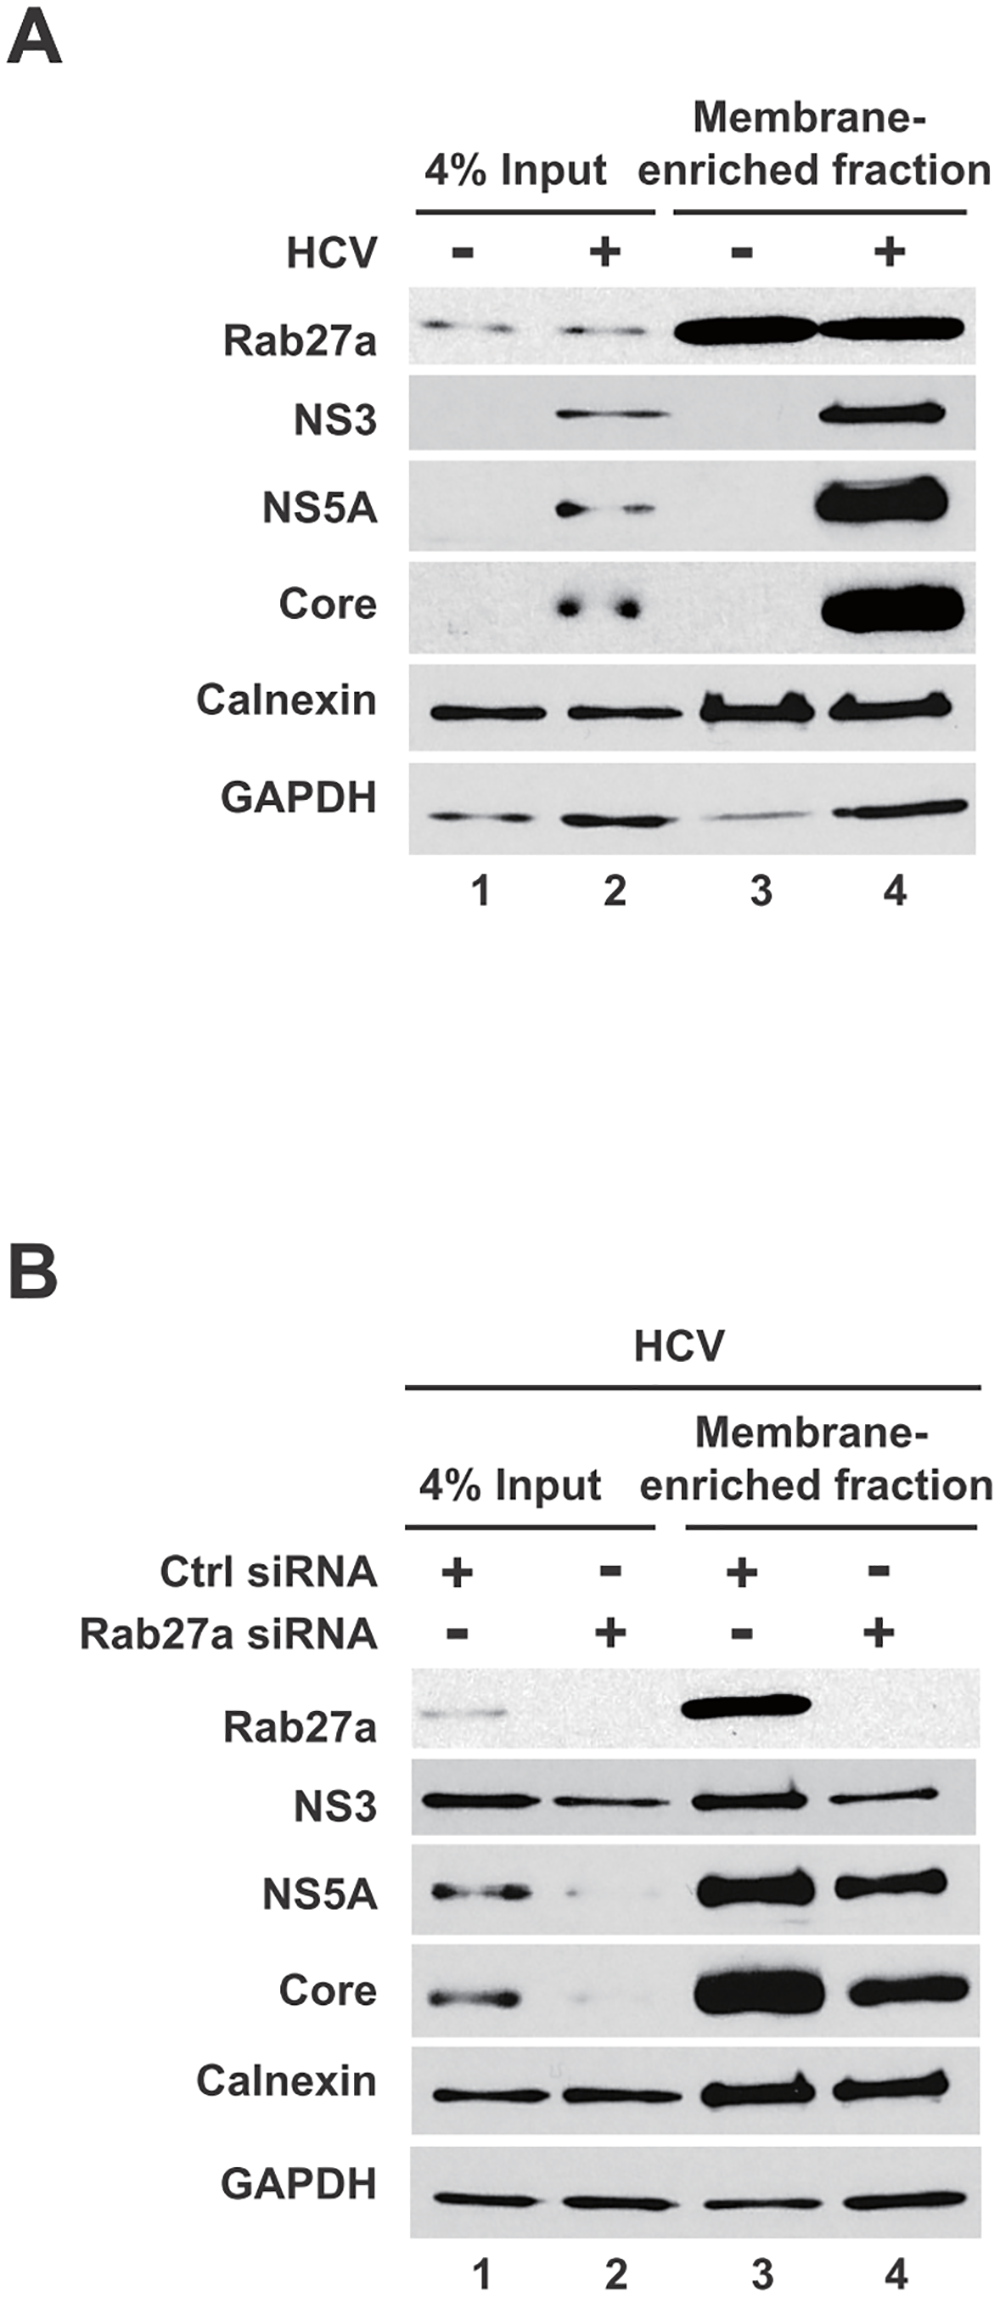 Presence of Rab27a and viral proteins membrane-enriched fractions.